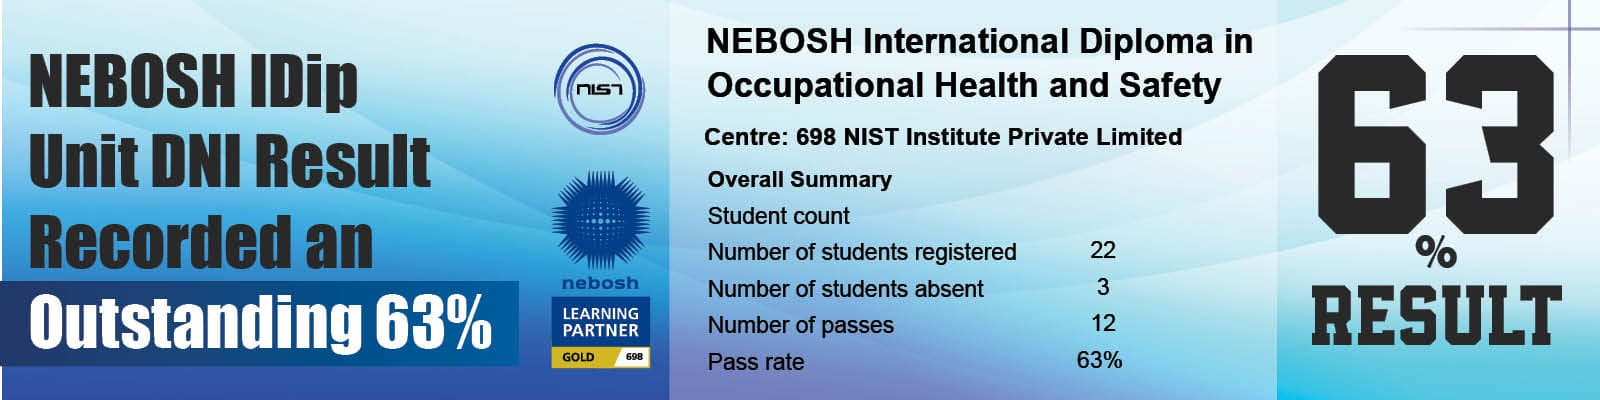 an-outstanding-result-of-63-recorded-in-nebosh-idip-unit-dni